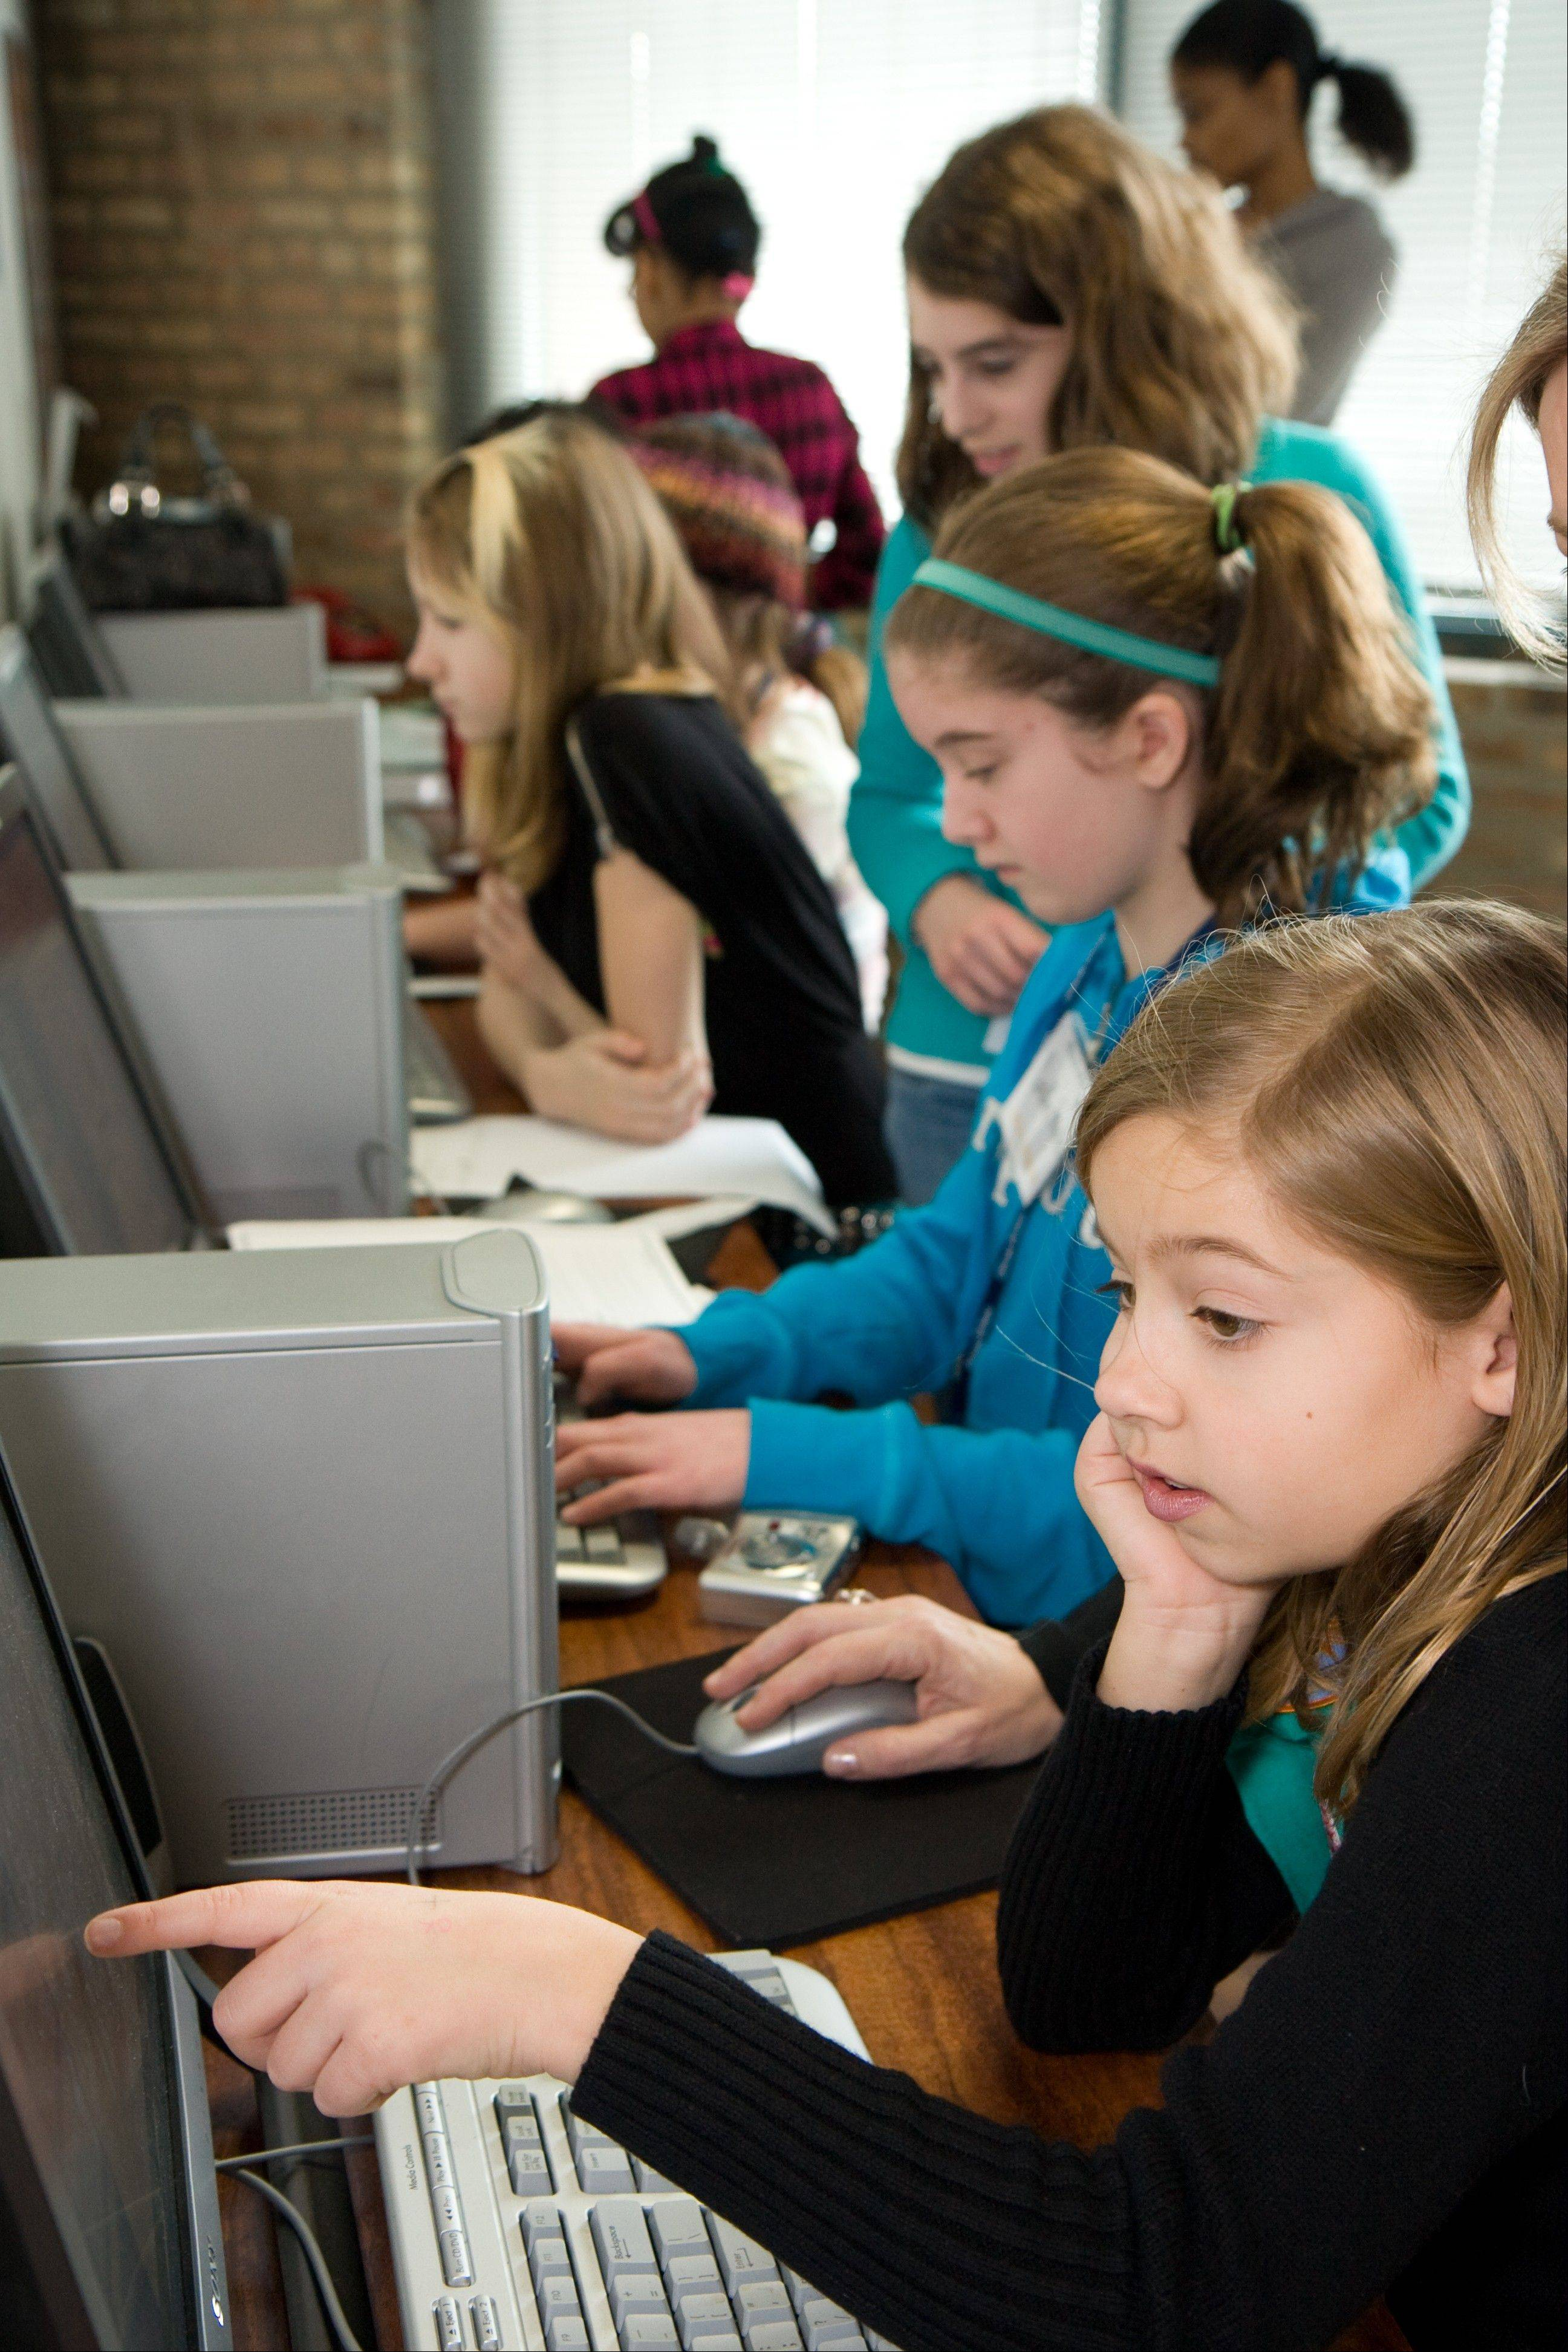 Girl Scouts gather at Journey World, an interactive Girl Scout learning center in Chicago, where girls of all ages who live in the council area can learn about science, technology, engineering, math, business and environmental sciences.